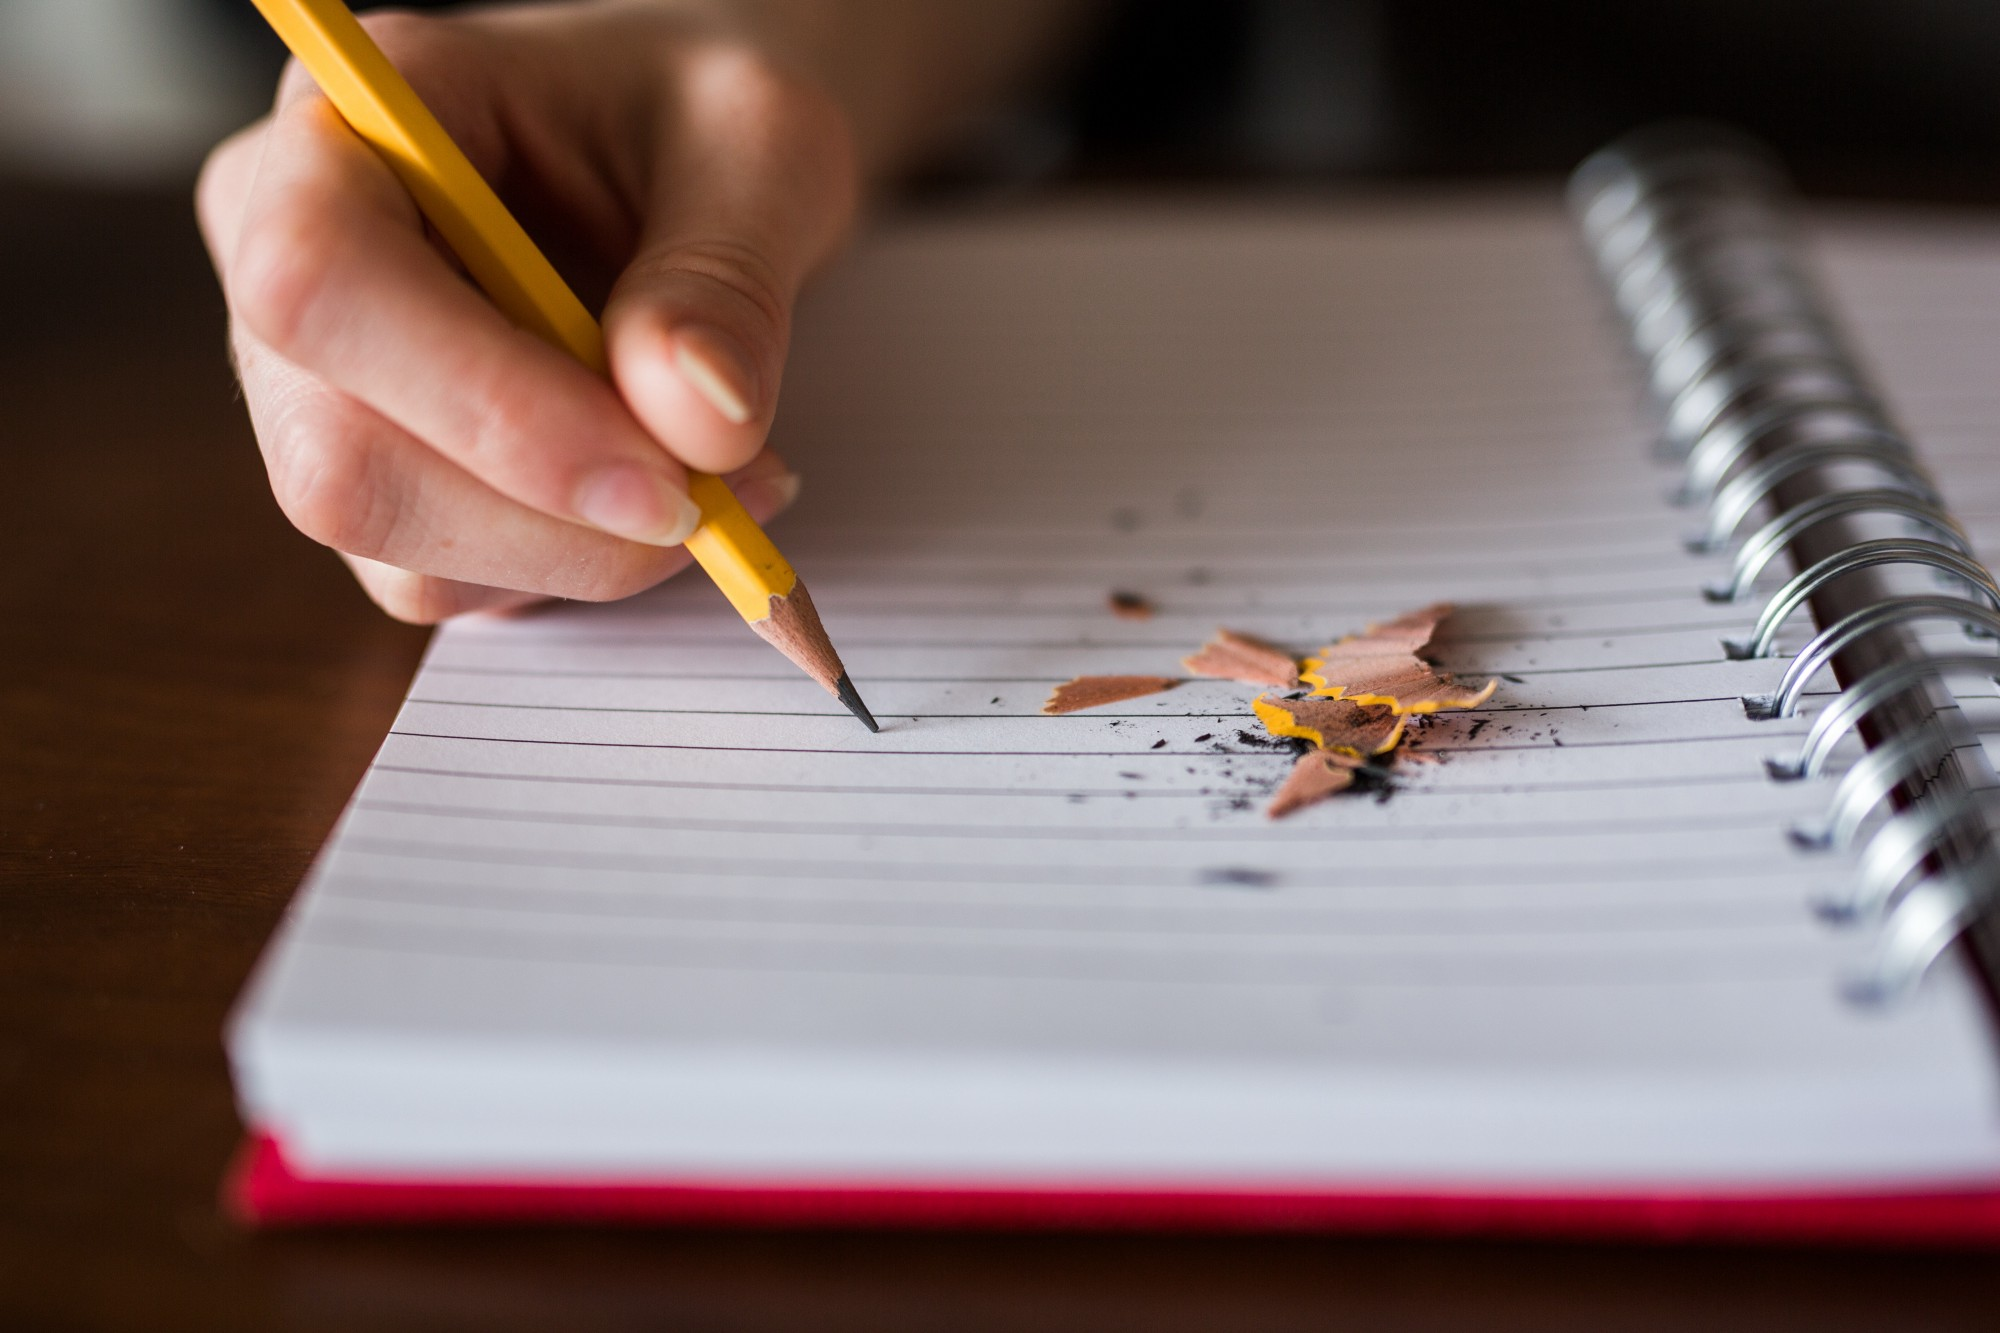 This image is of a student composing a piece of work via pencil and paper.